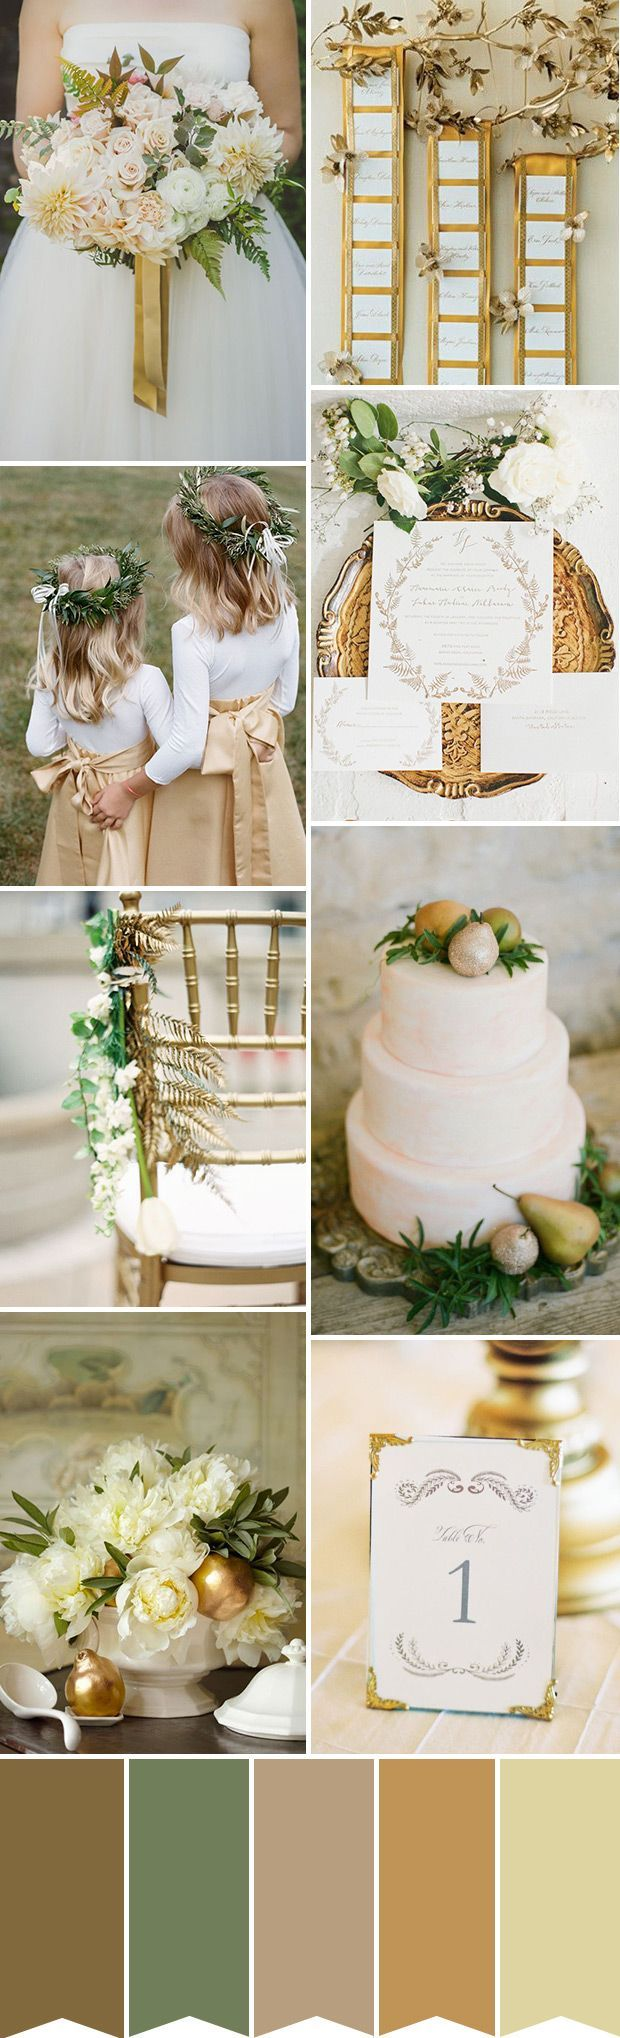 Glamorous Gold wedding color palette  with shades of gilded gold, vintage cream and a hint of natural green rustic wedding color schemes